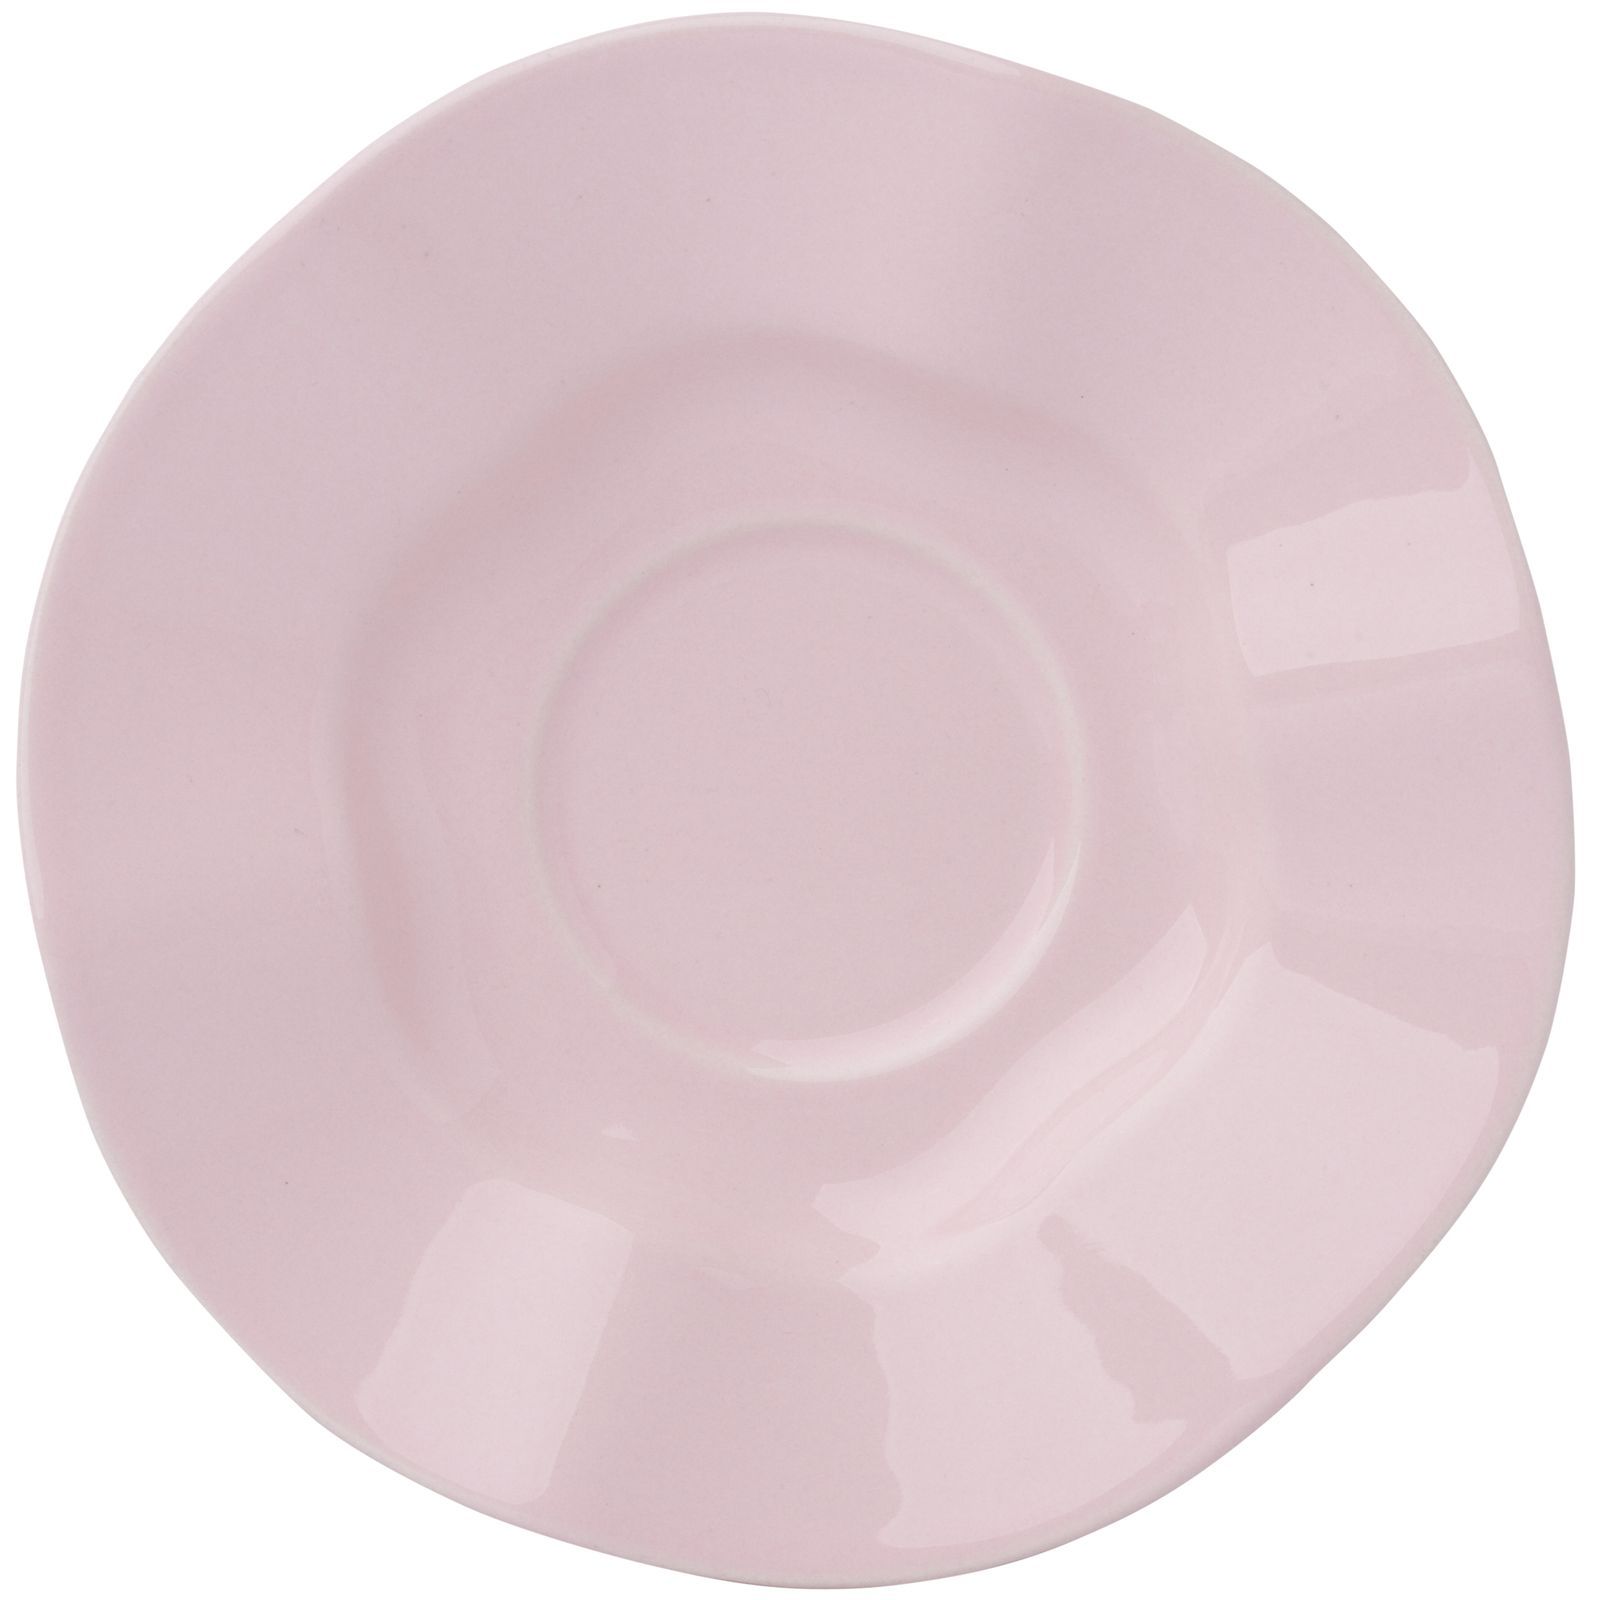 Soucoupe Diana Rustic Pink 15 cm AMBITION